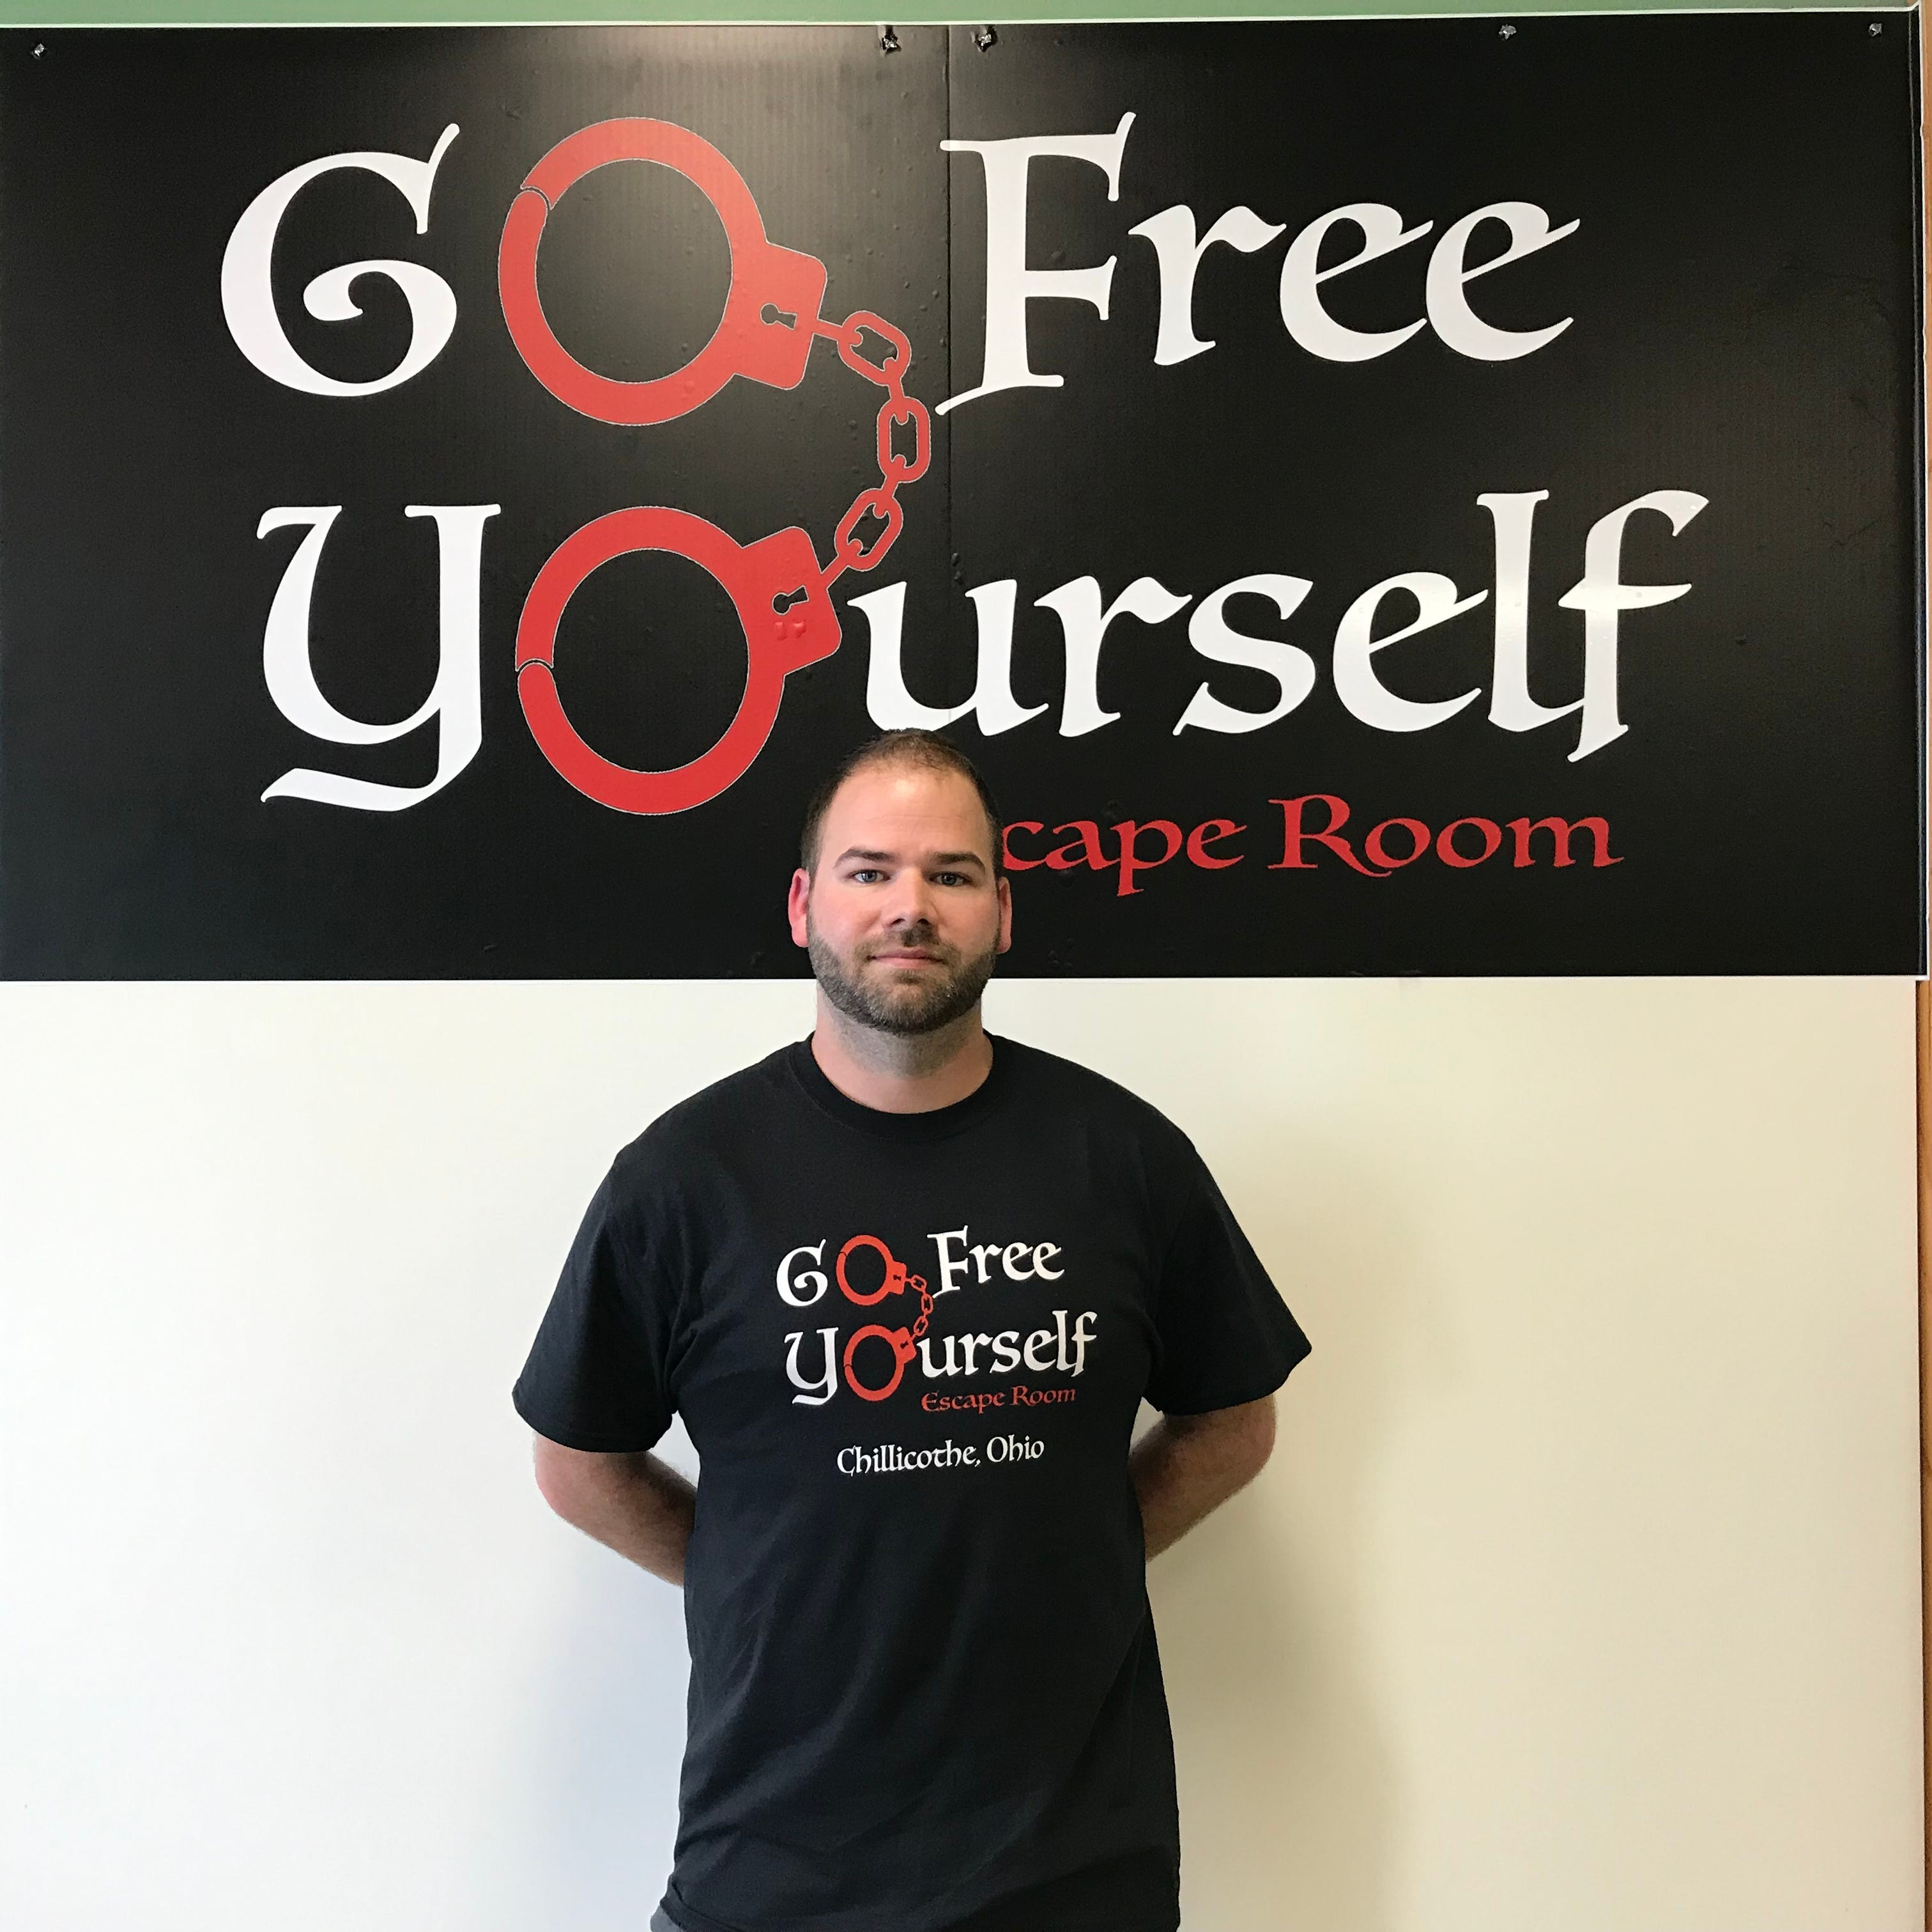 Go Free Yourself brings escape room adventure to Chillicothe